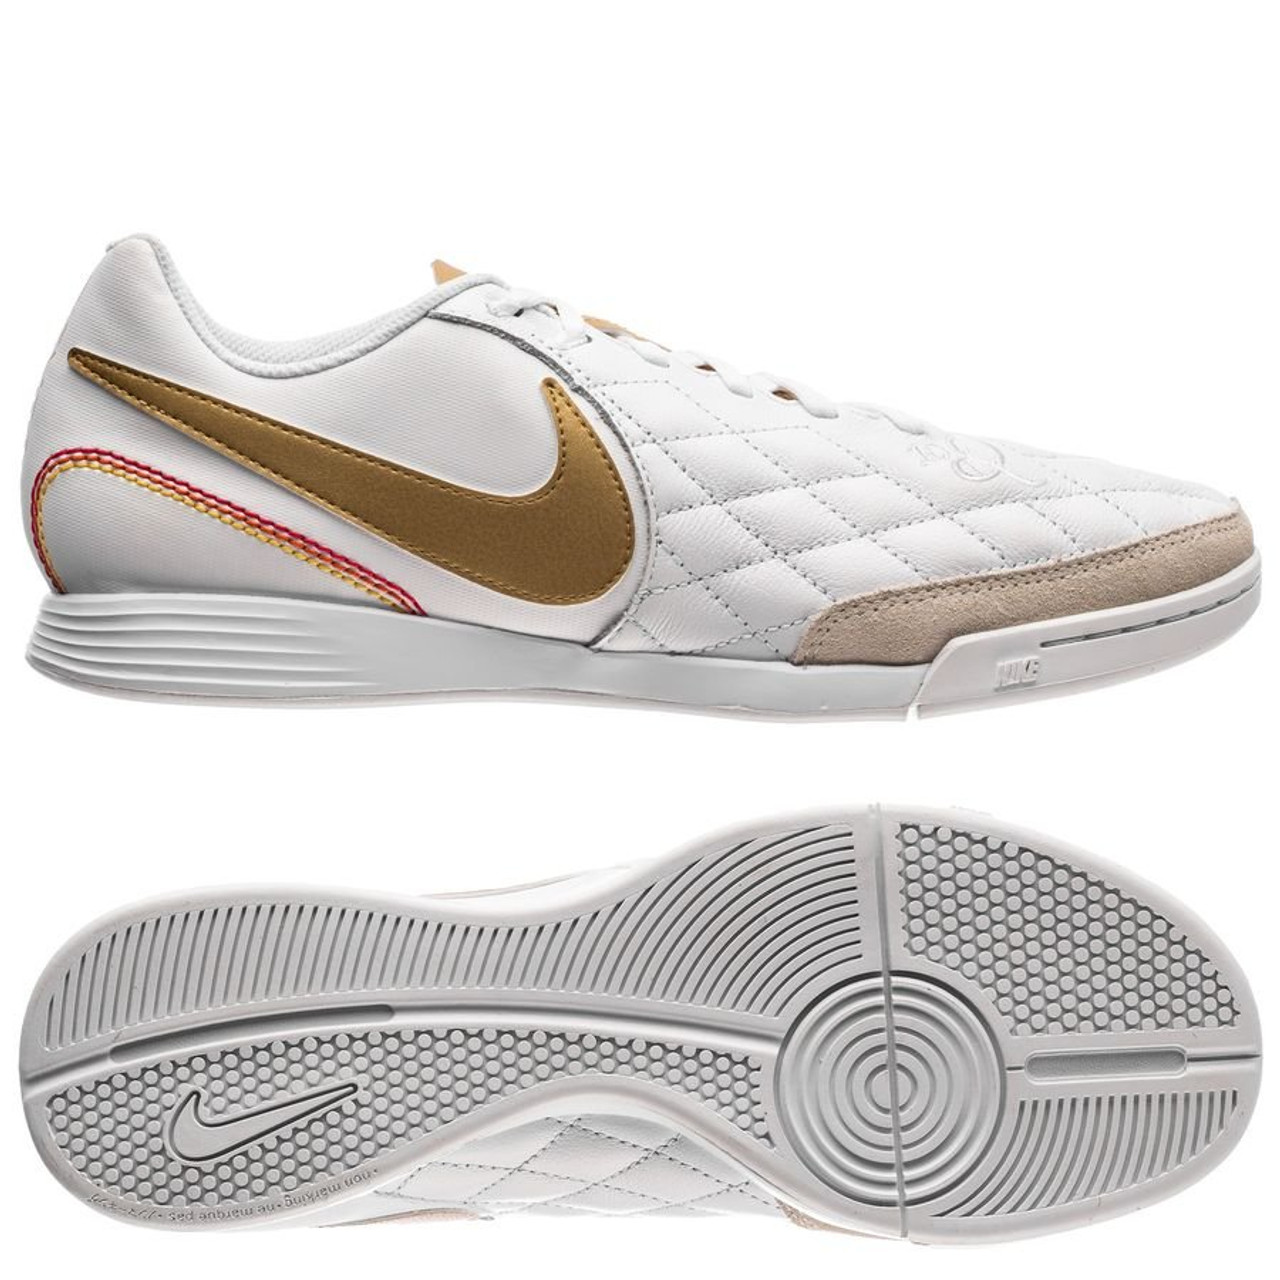 super popular dddeb 00eab NIKE LEGEND 7 ACADEMY 10R IC White/gold